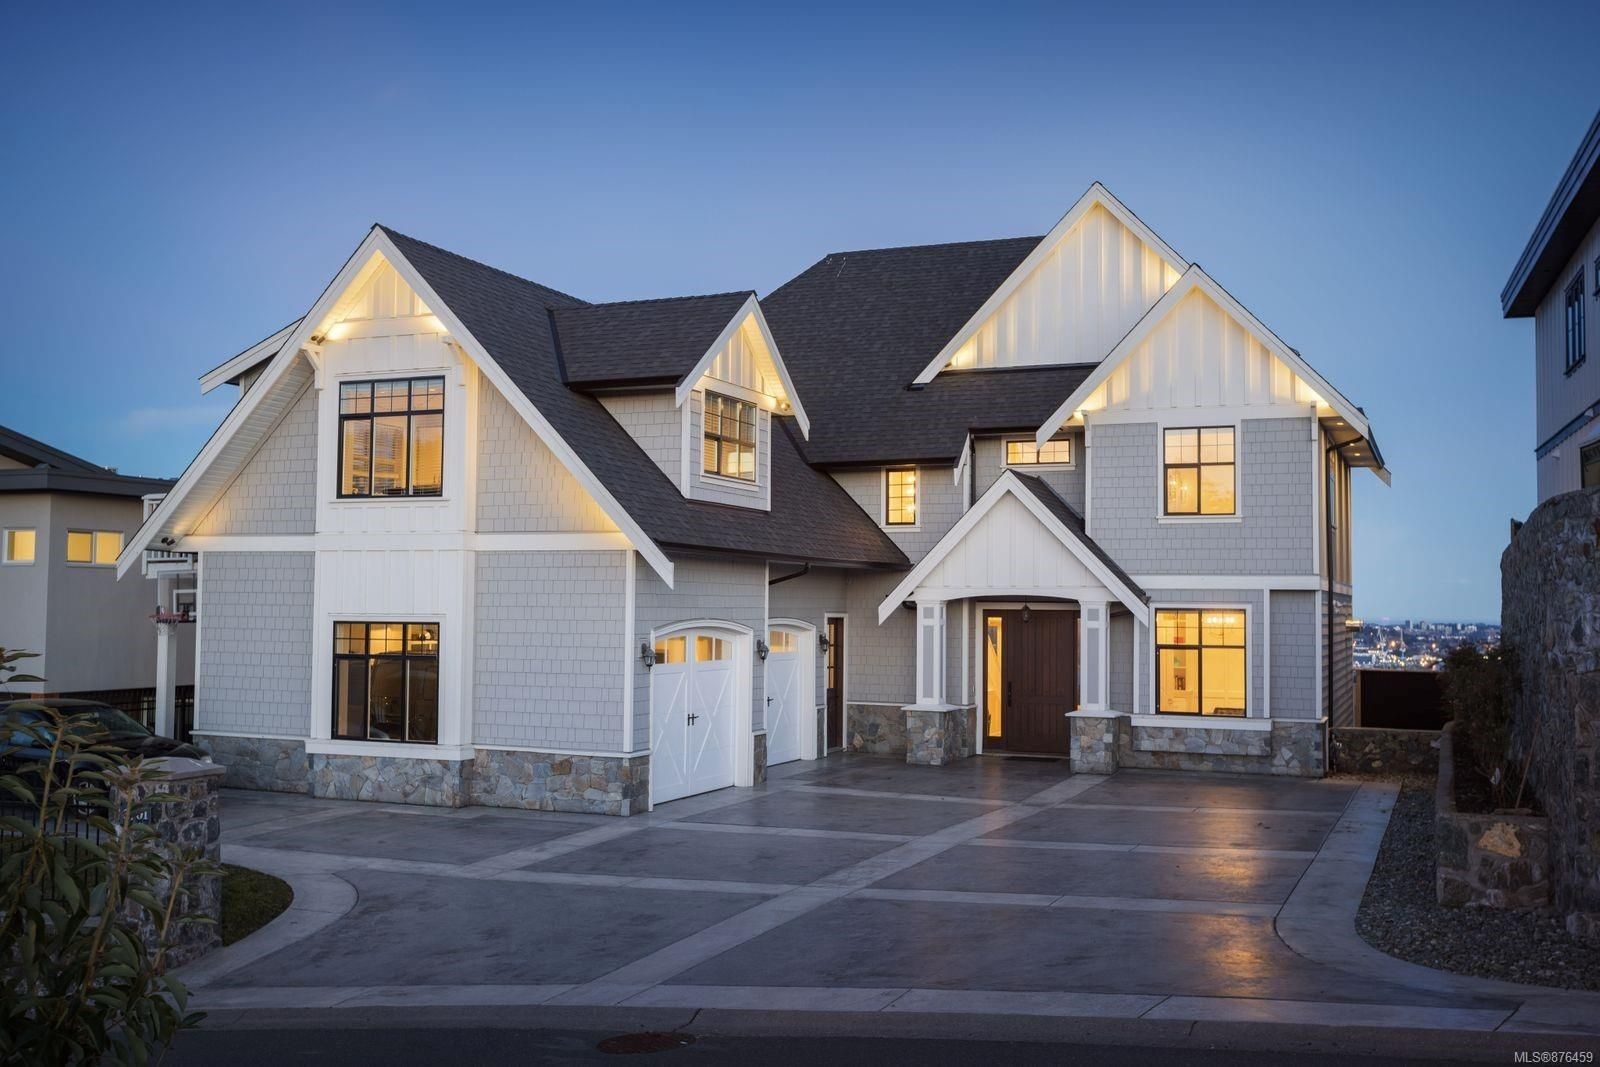 Main Photo: 2701 Goldstone Hts in : La Atkins House for sale (Langford)  : MLS®# 876459